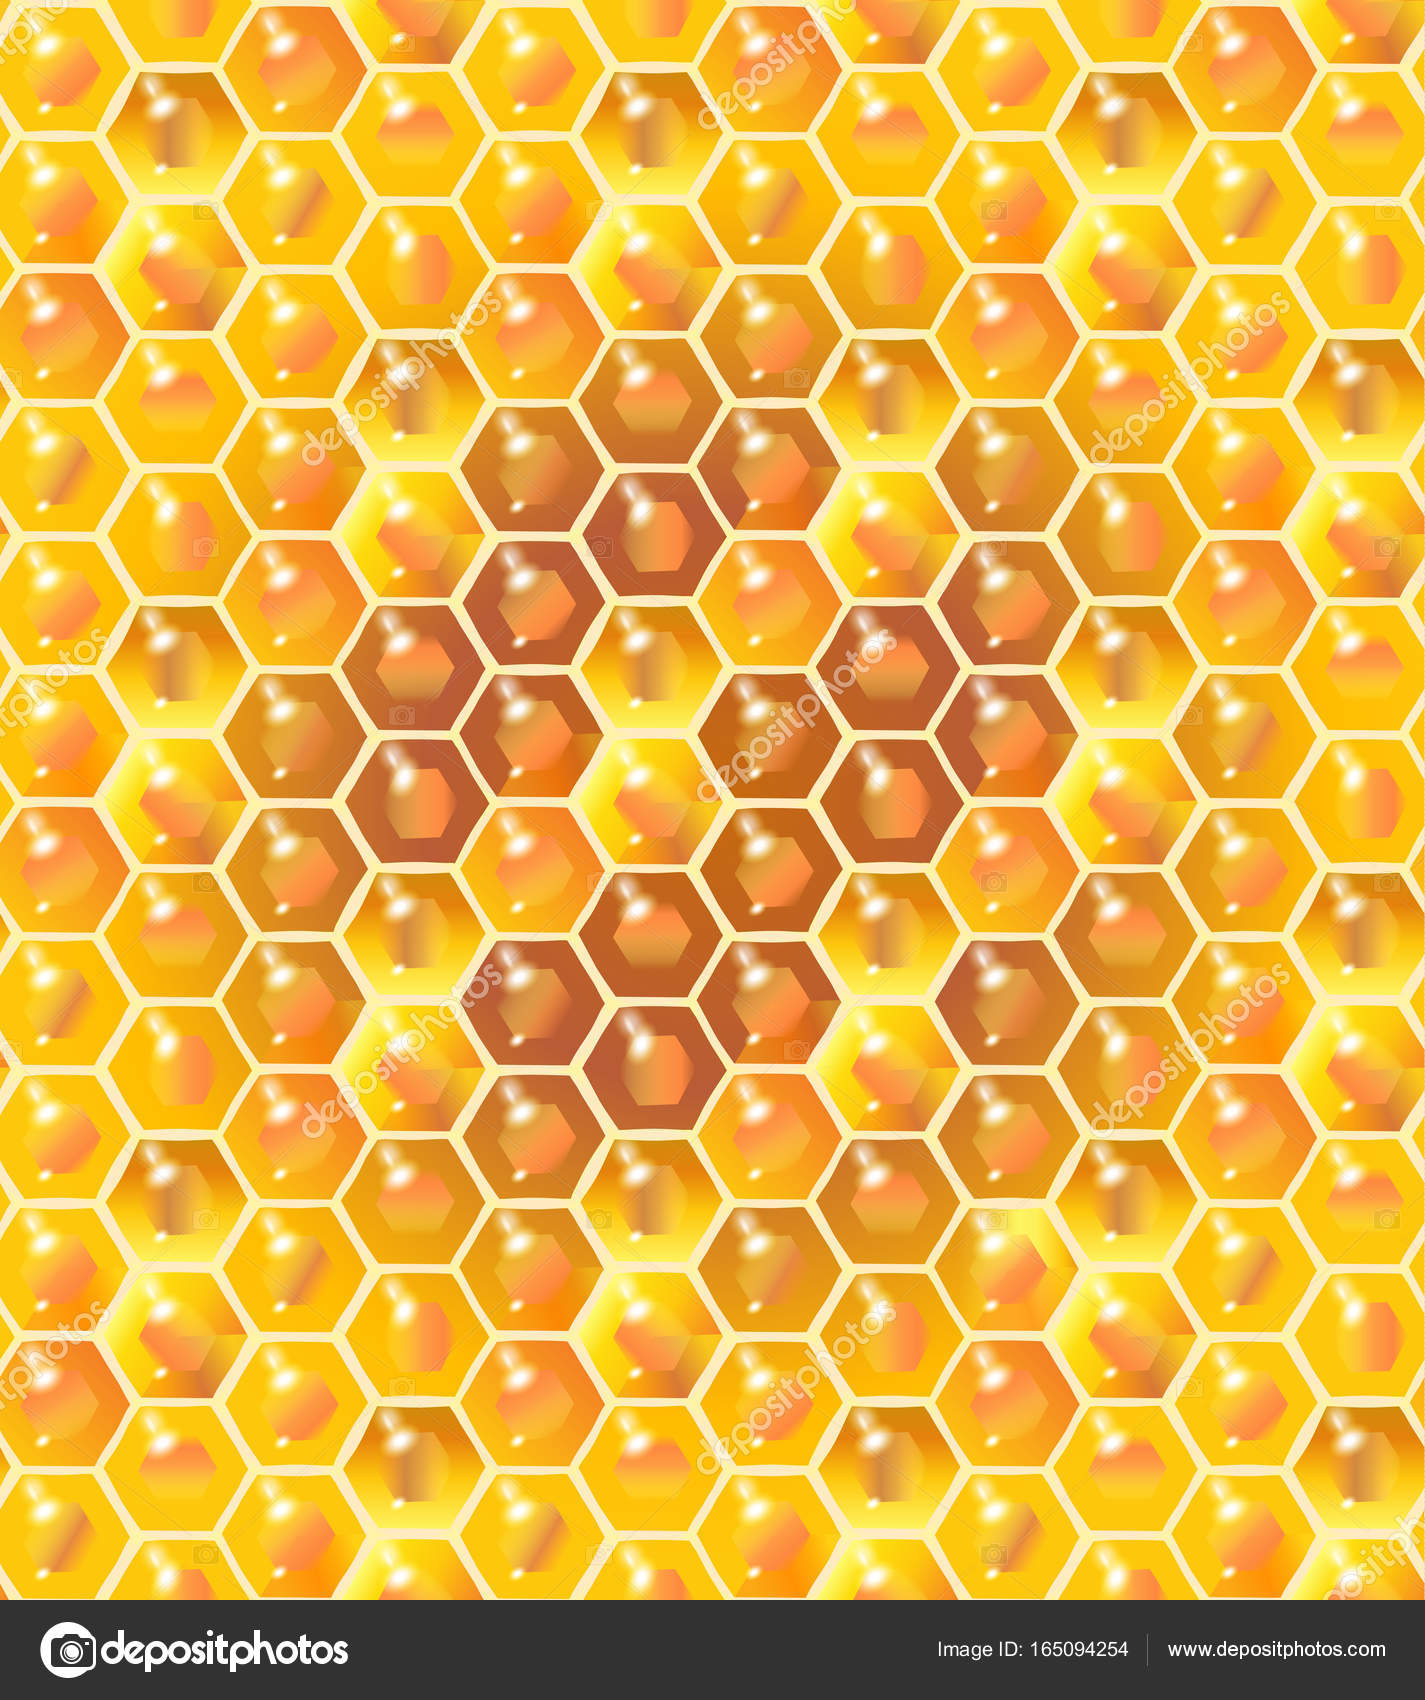 Honey seamless pattern realistic 3d honeycomb background tasty realistic 3d honeycomb background tasty sweet dessert healthy food voltagebd Image collections